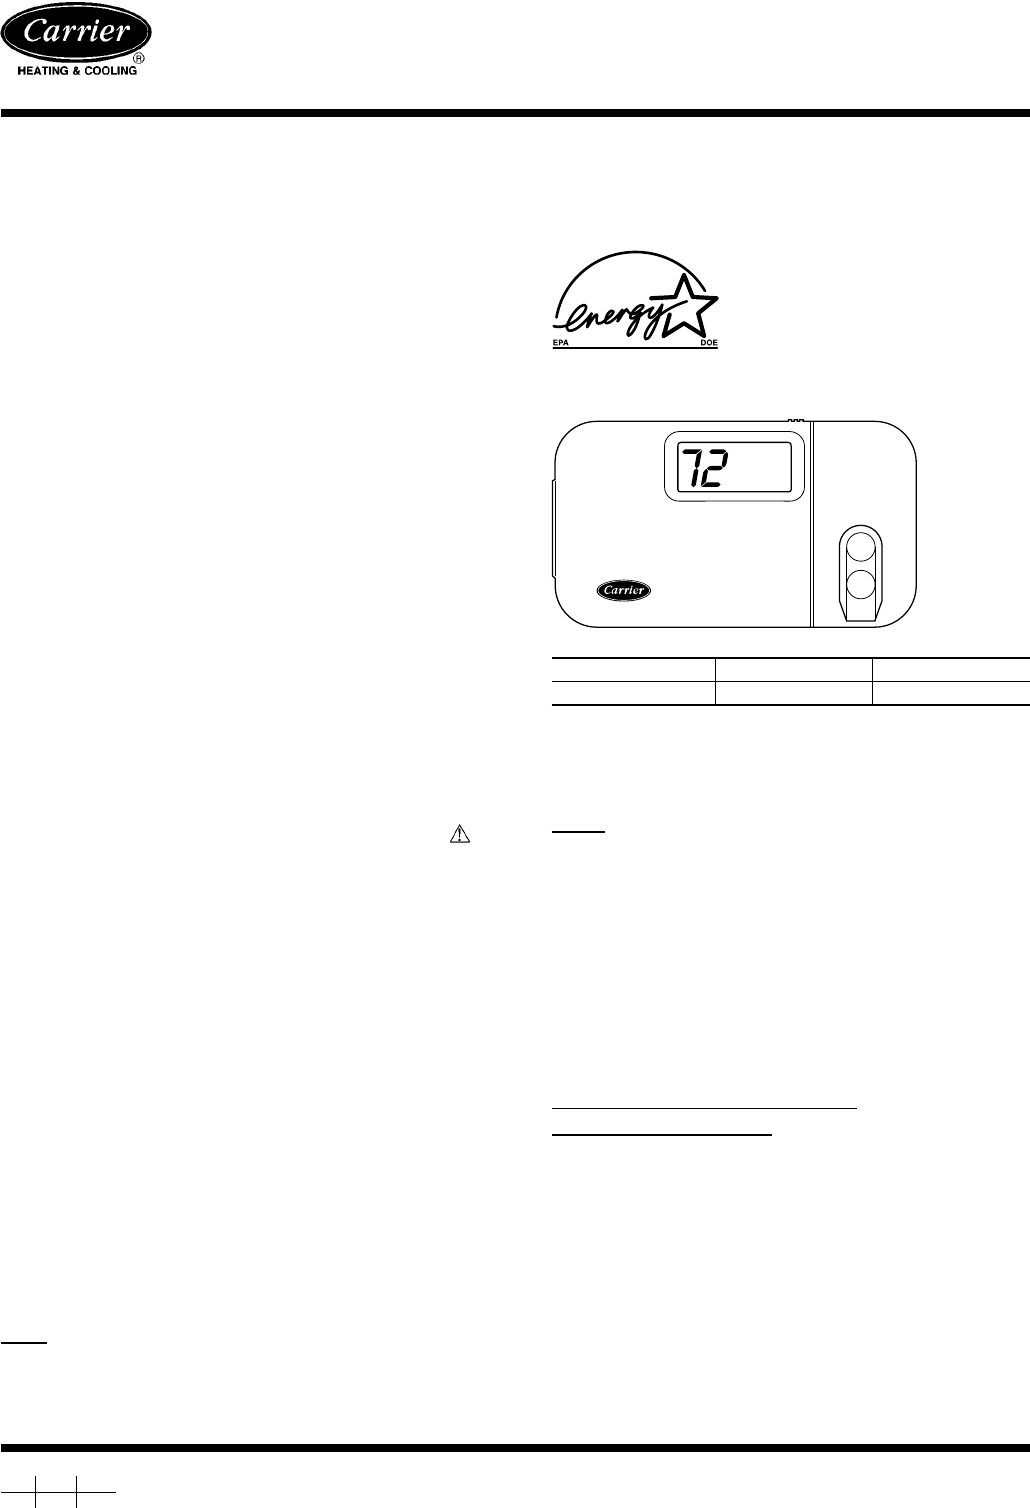 hight resolution of carrier thermostat thermostat user manual